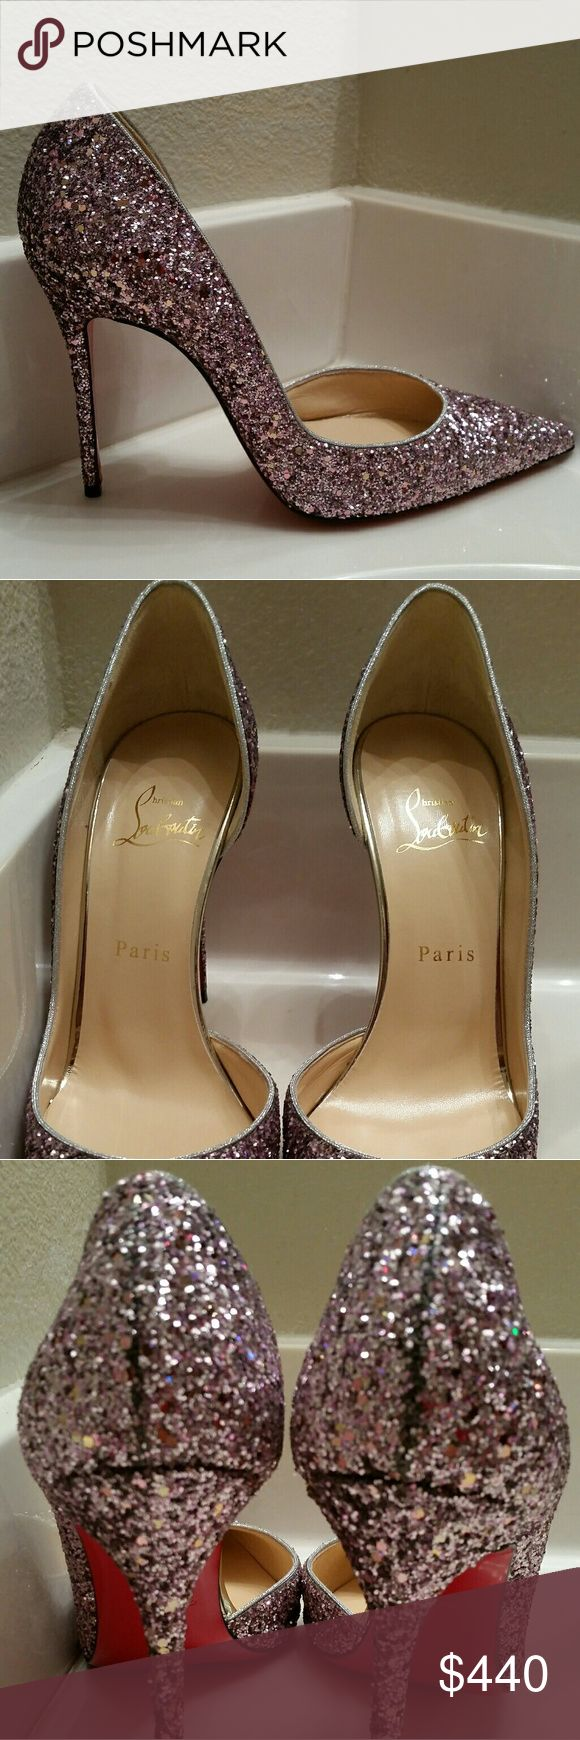 Christian Louboutin Iriza Glitter Authentic Christian Louboutin Iriza 100 Glitter/Spec/Rub Met. The color is Ronsard/Light Gold. These are size Eur 39. Comes in original box with dust bag. Christian Louboutin Shoes Heels